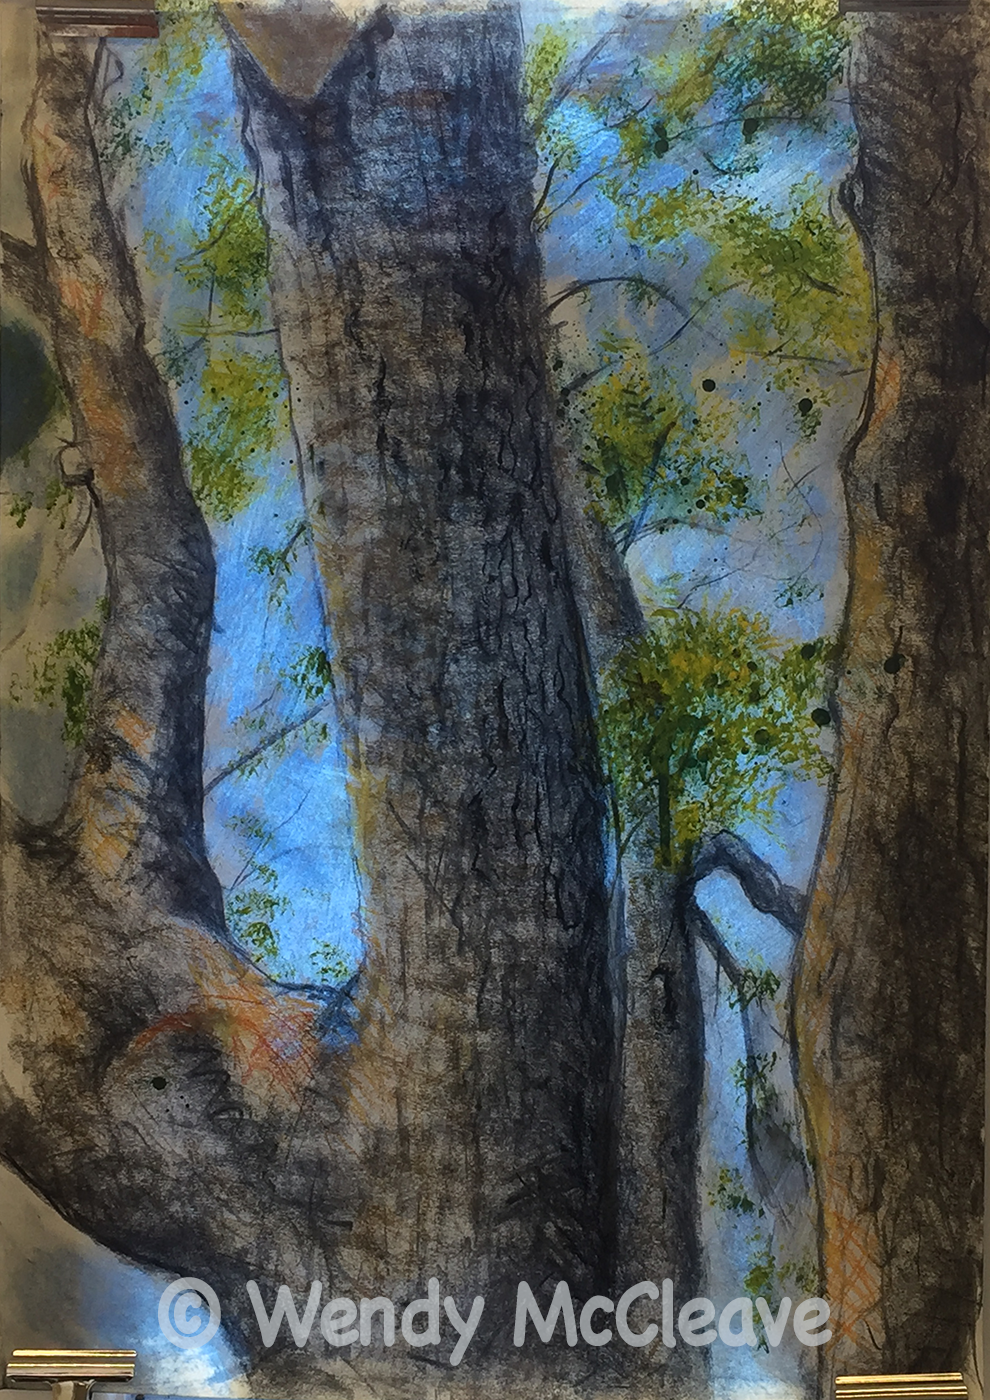 Mixed media work of trees with spring leaves against a blue sky